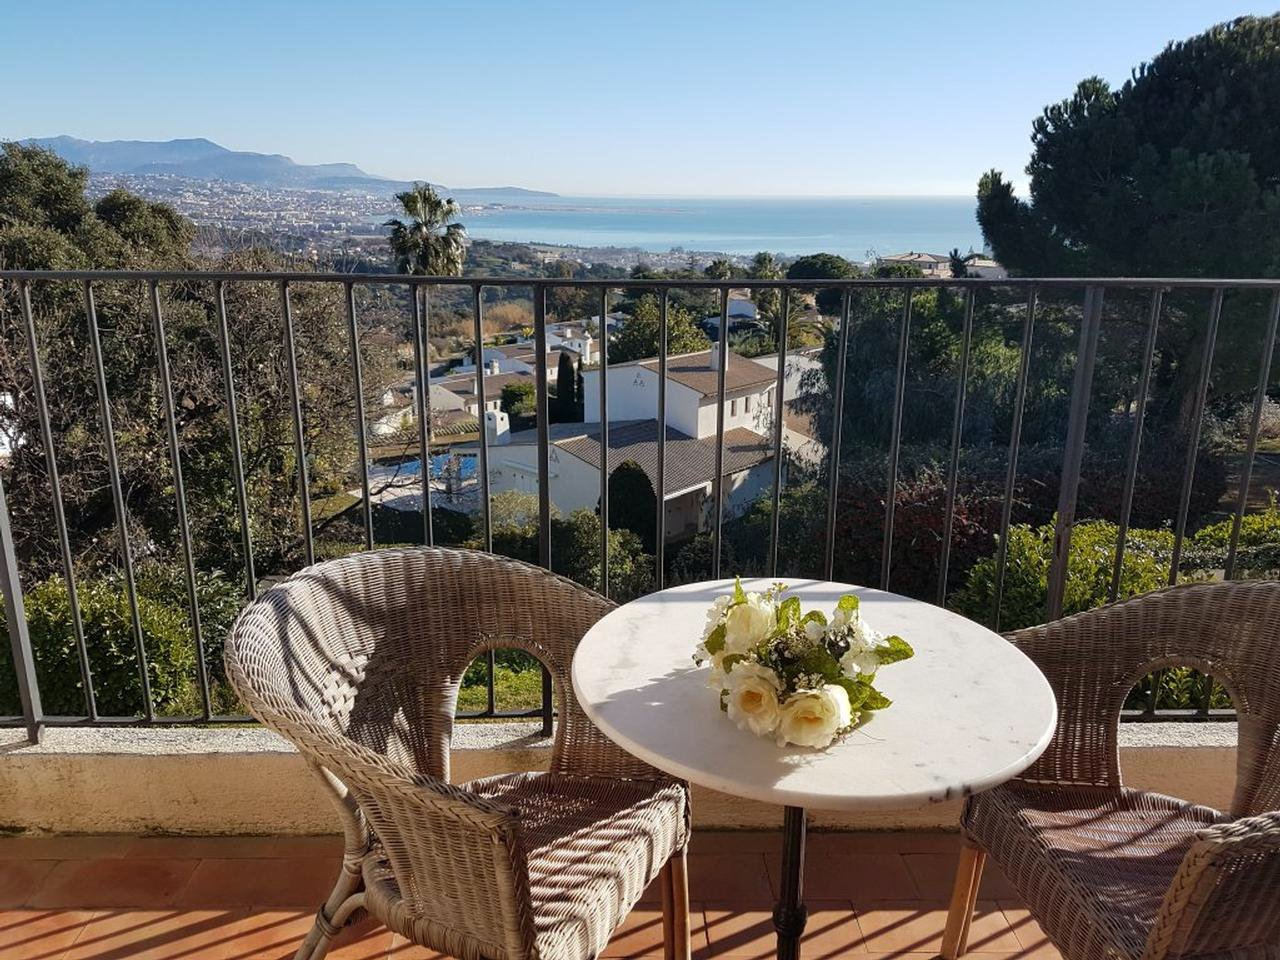 Apartment with amazing views and club access in Villeneuve-Loubet - pool & tennis